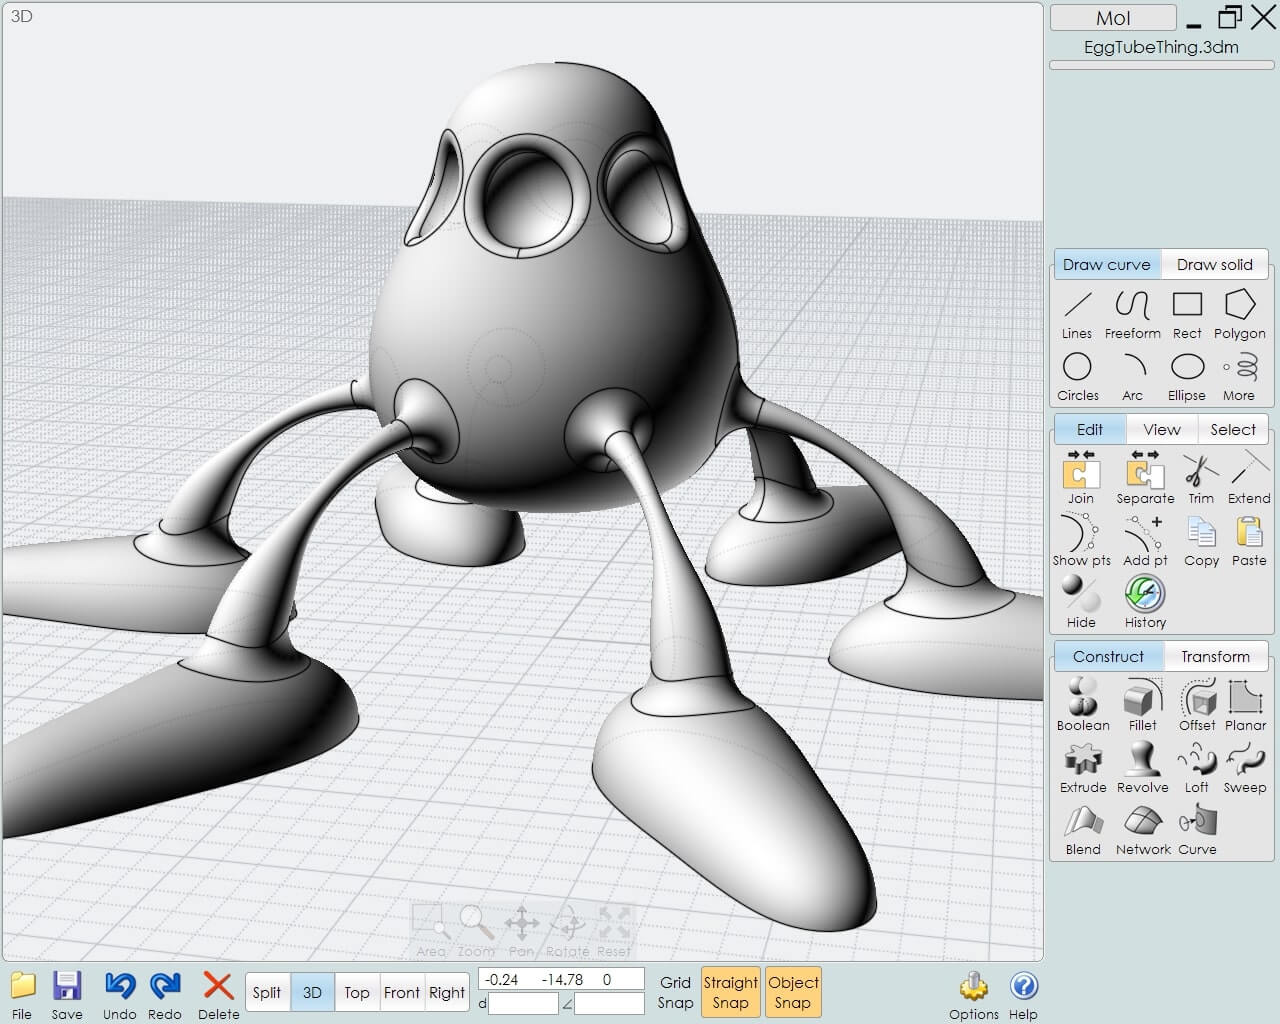 MoI (Moment of Inspiration) for 3d printing